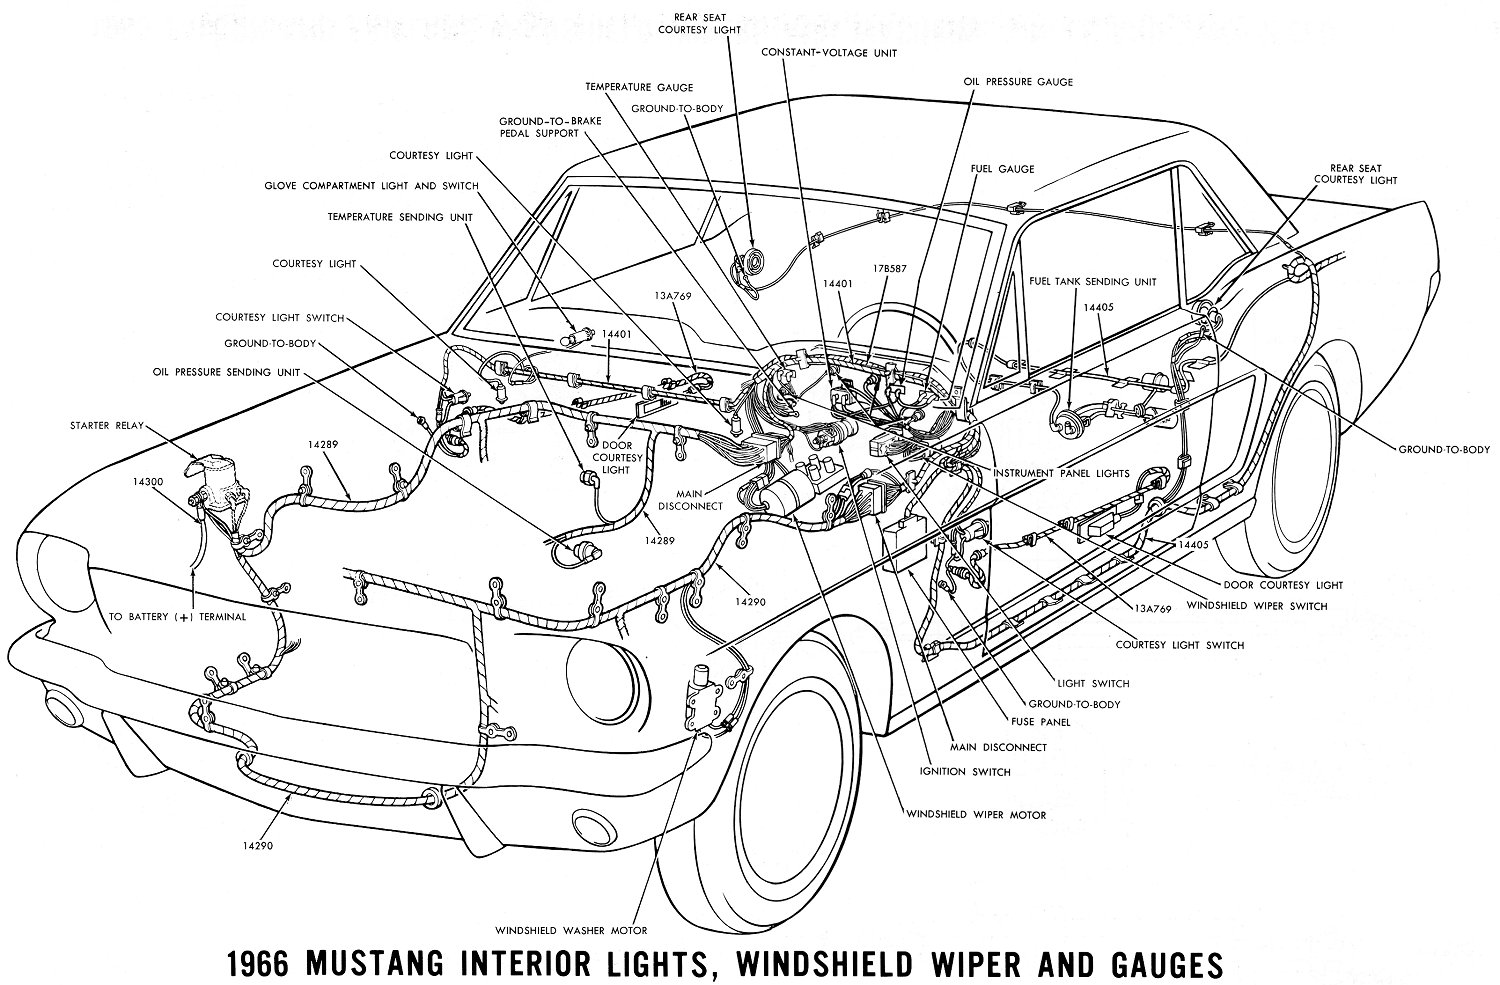 1966 Mustang Wiring Diagrams Average Joe Restoration Externally Regulated Alternator Diagram Sm66int